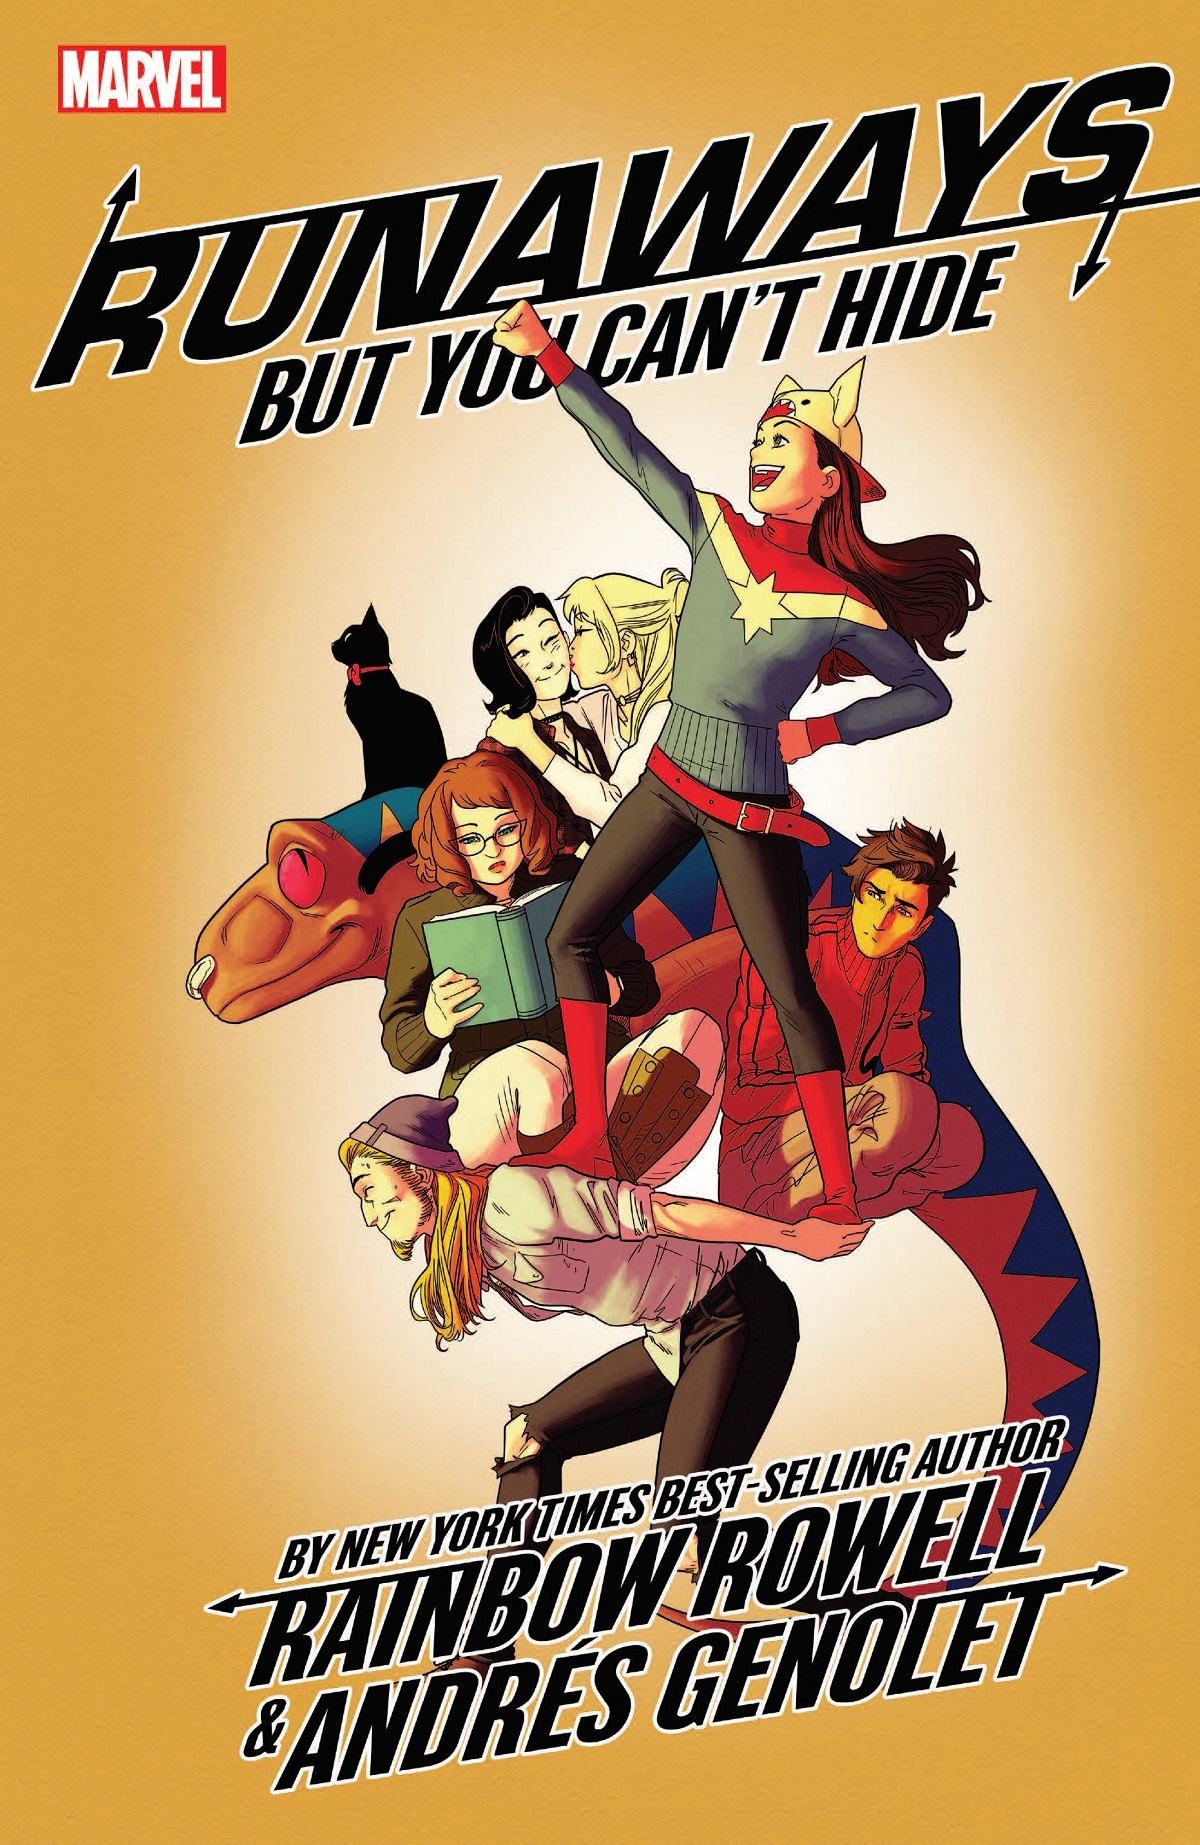 Runaways by Rainbow Rowell Vol. 4: But You Can't Hide (Trade Paperback)